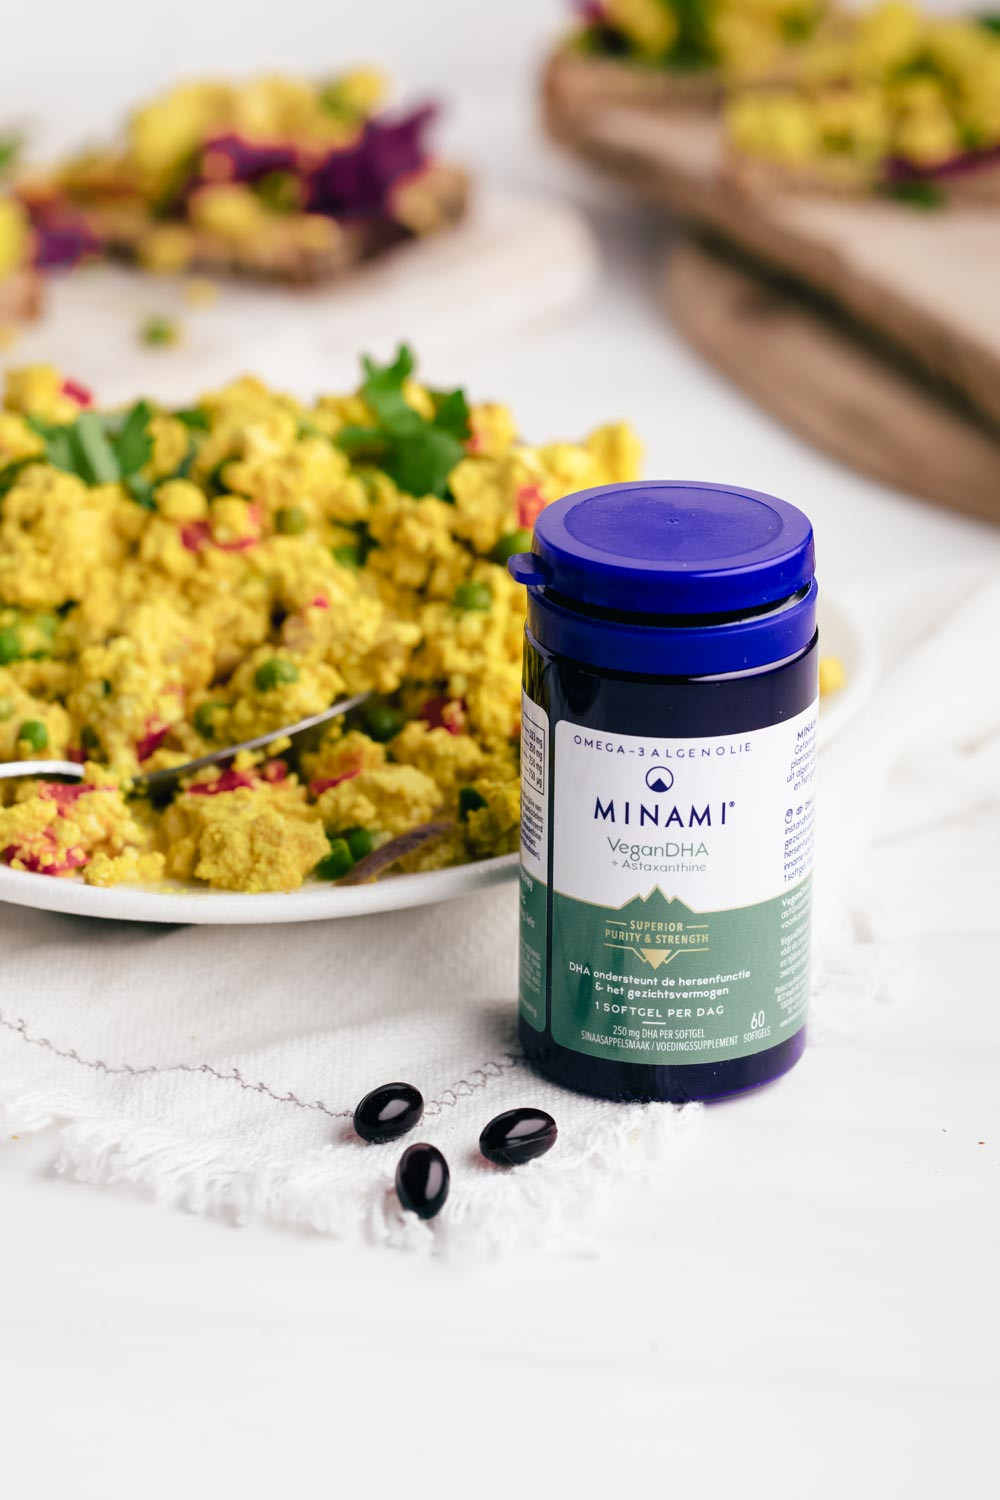 Omega 3 fatty acid supplement in a blue bottle on a white backdrop in front of scramble tofu.